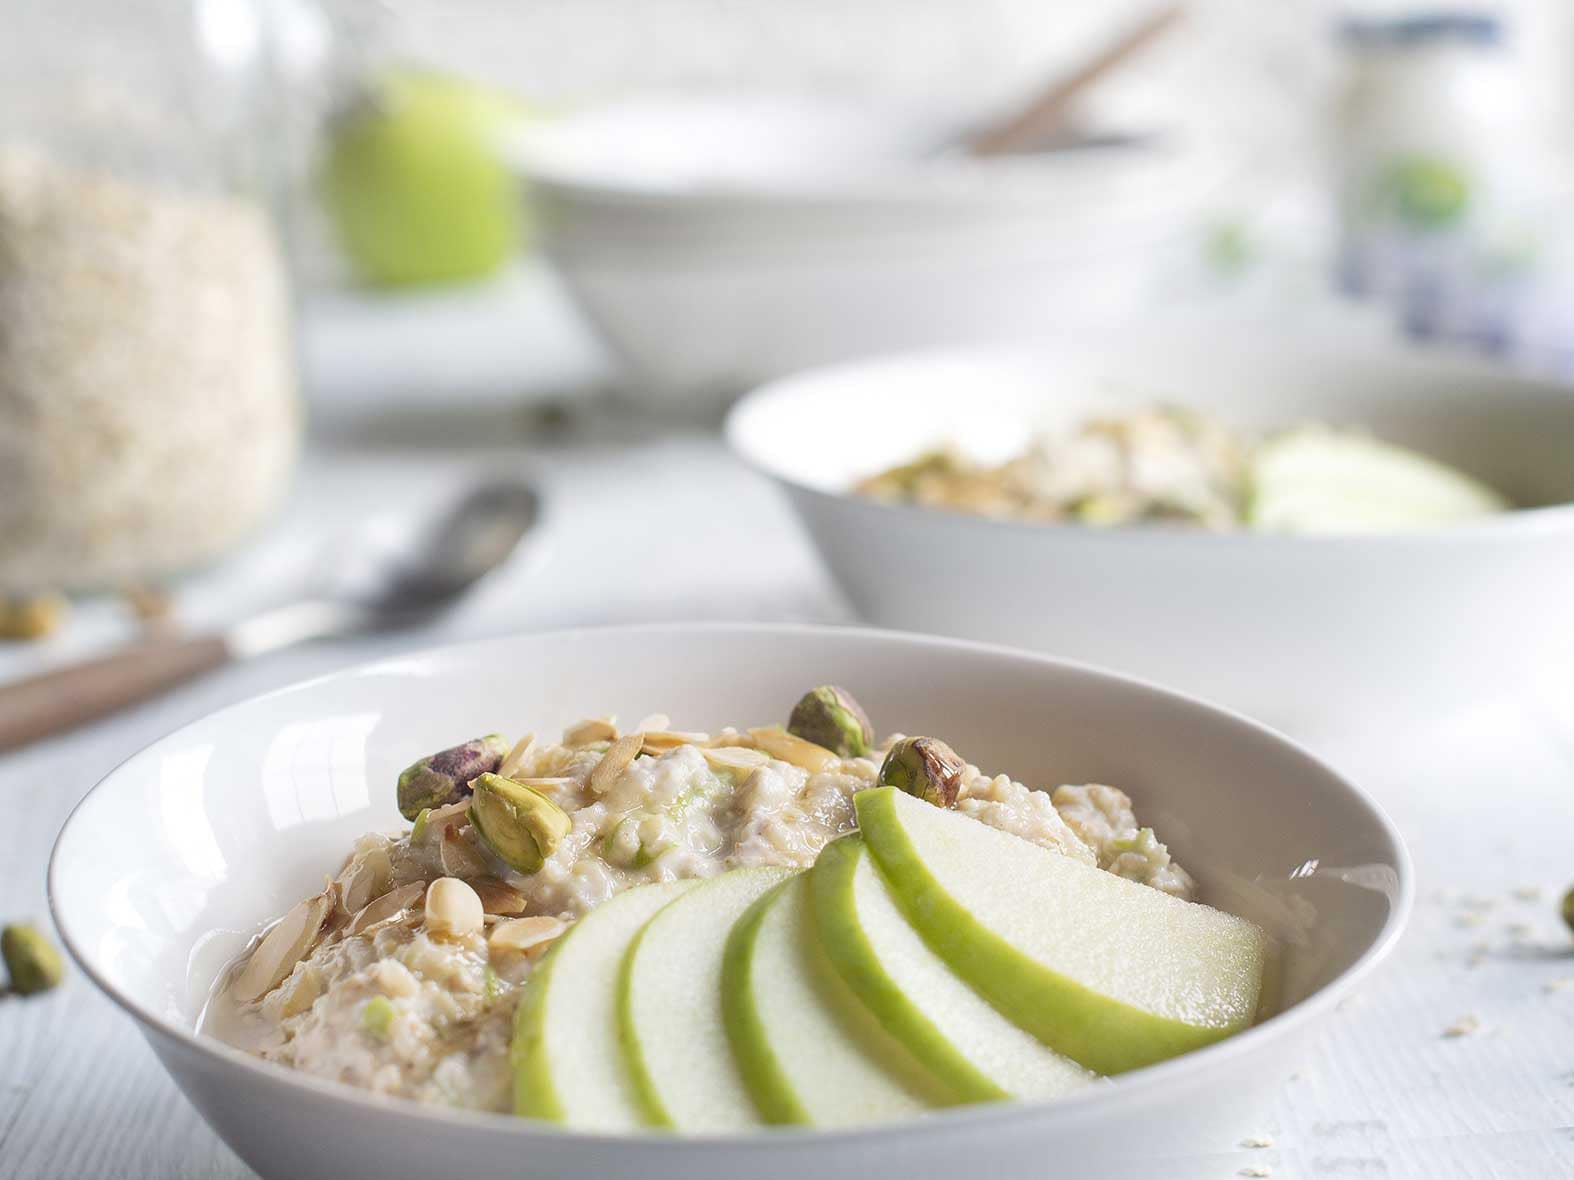 Original Bircher muesli-bowl